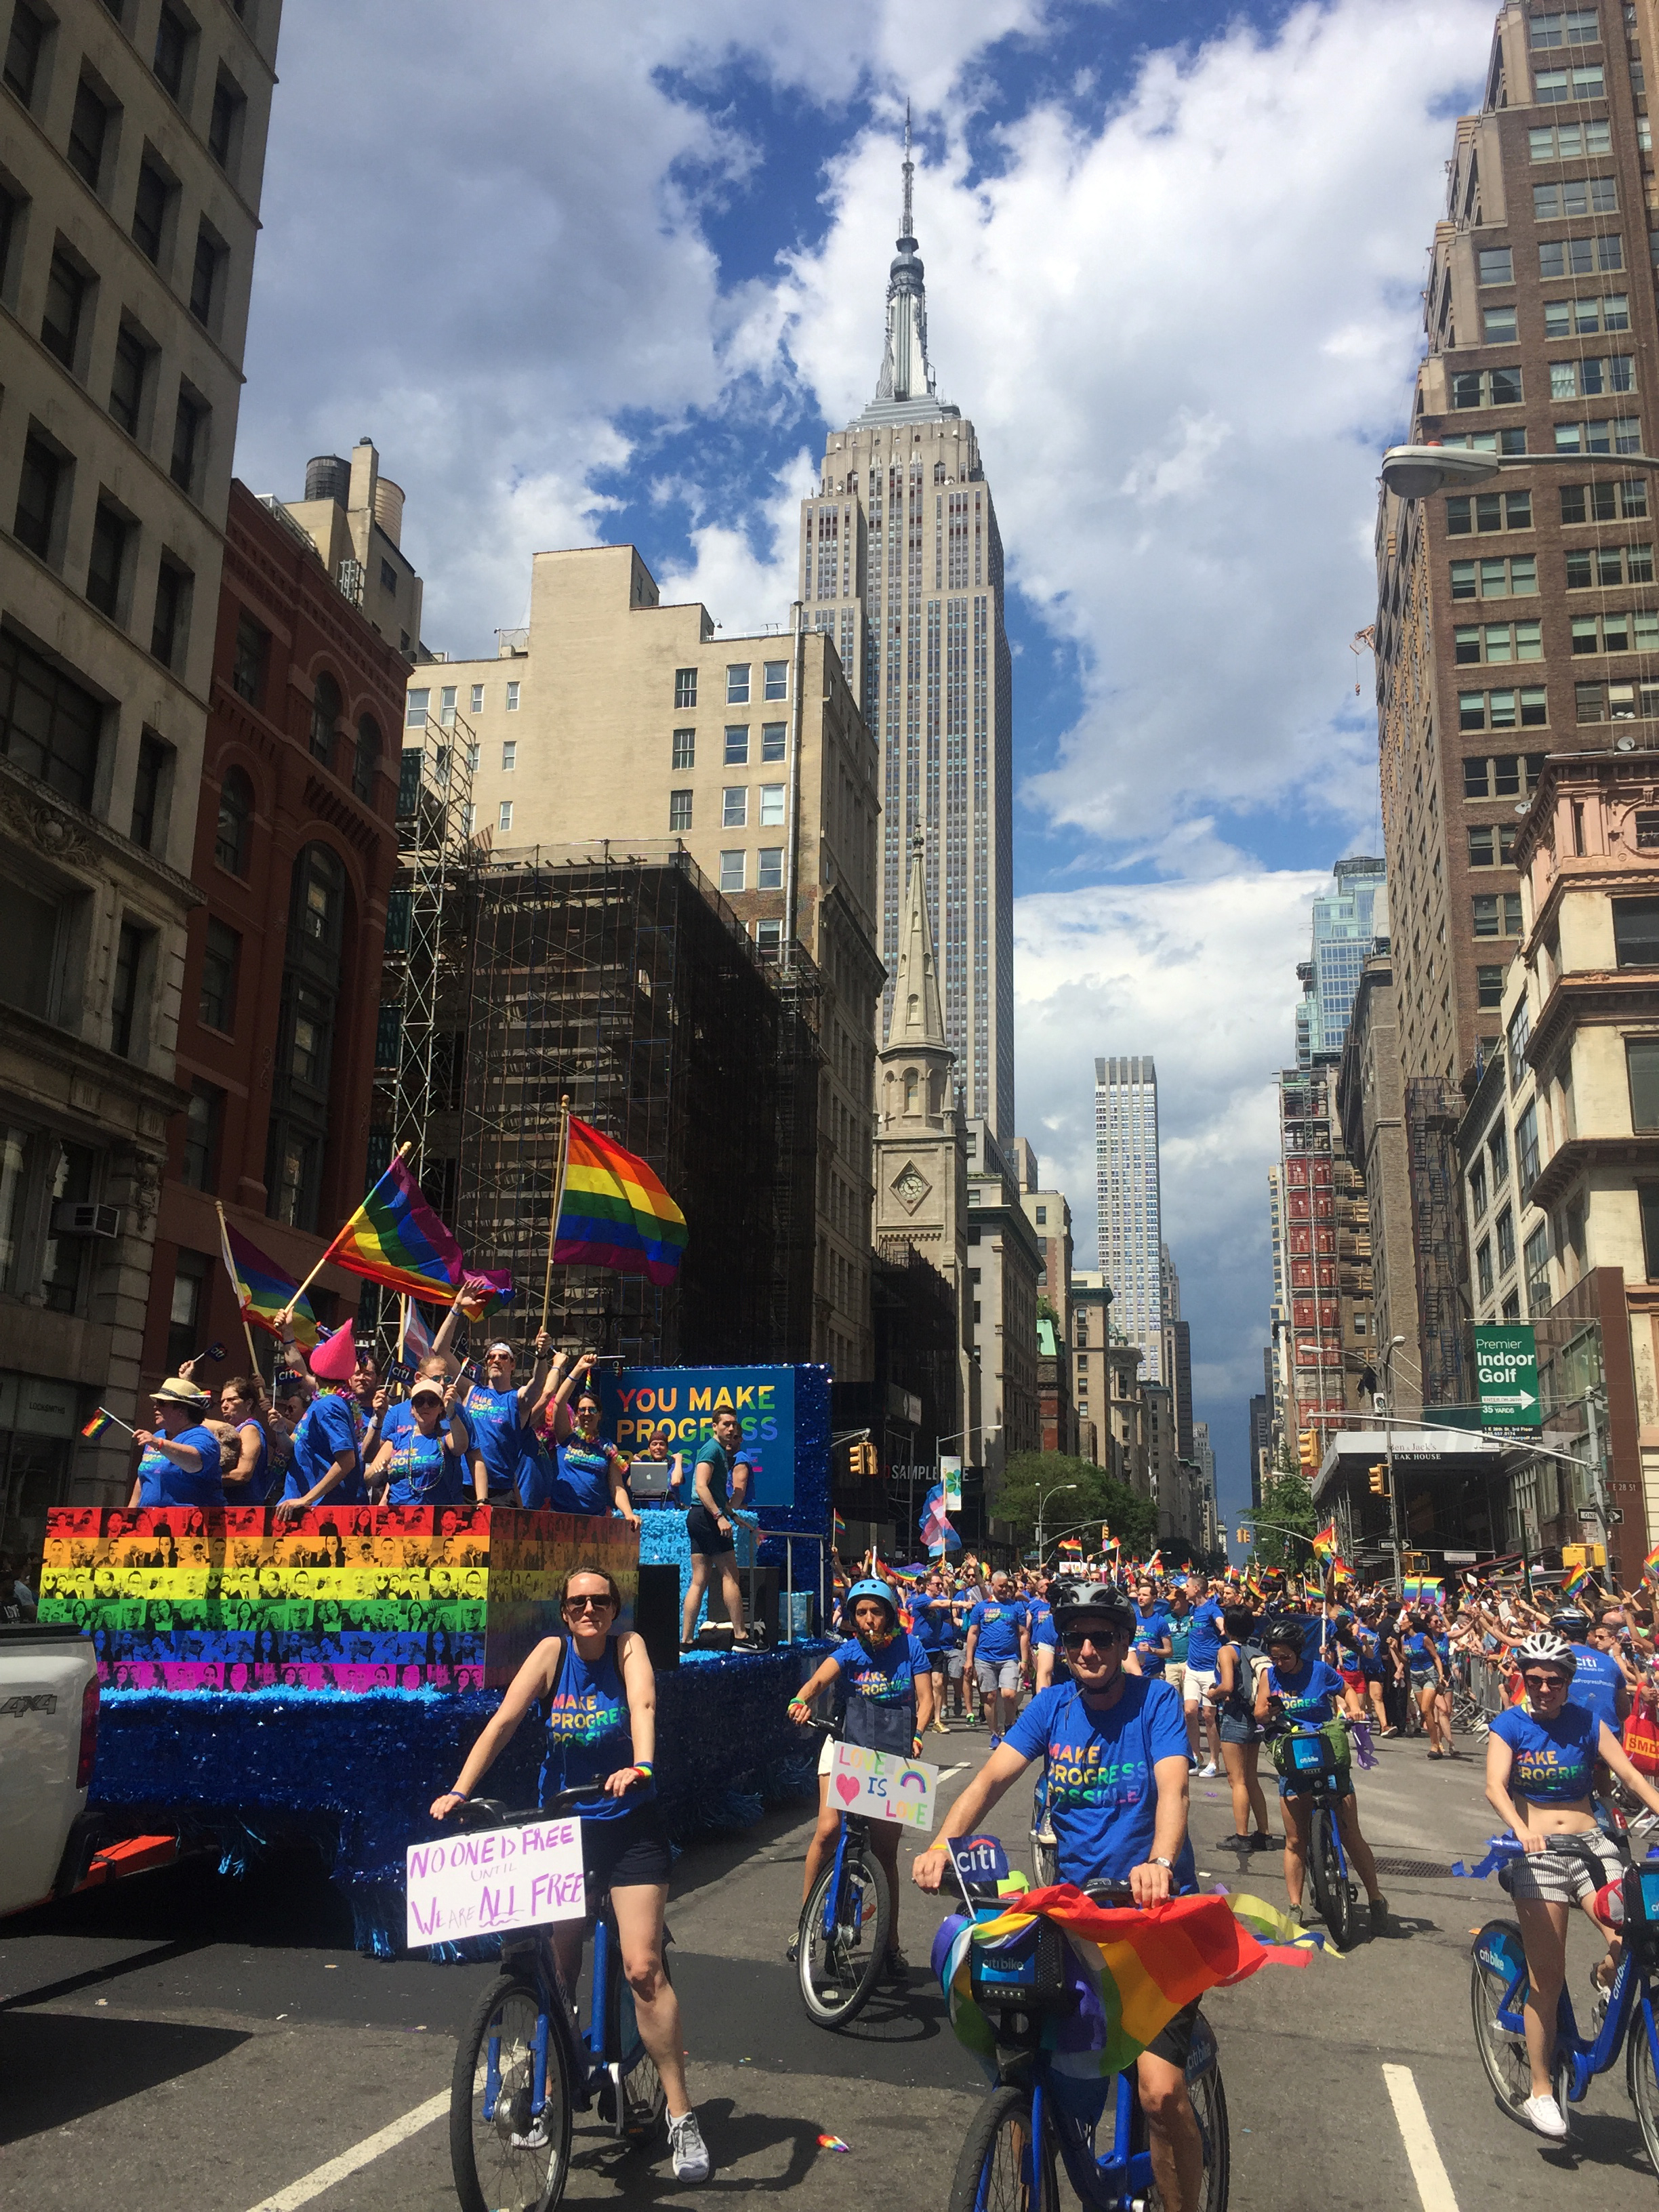 Parade Float - We worked with an event planner to design an official Pride parade float featuring visuals and messaging from other parts of the Pride campaign. It was also the perfect space for Citi LGBTQ employees to show their pride in the parade.